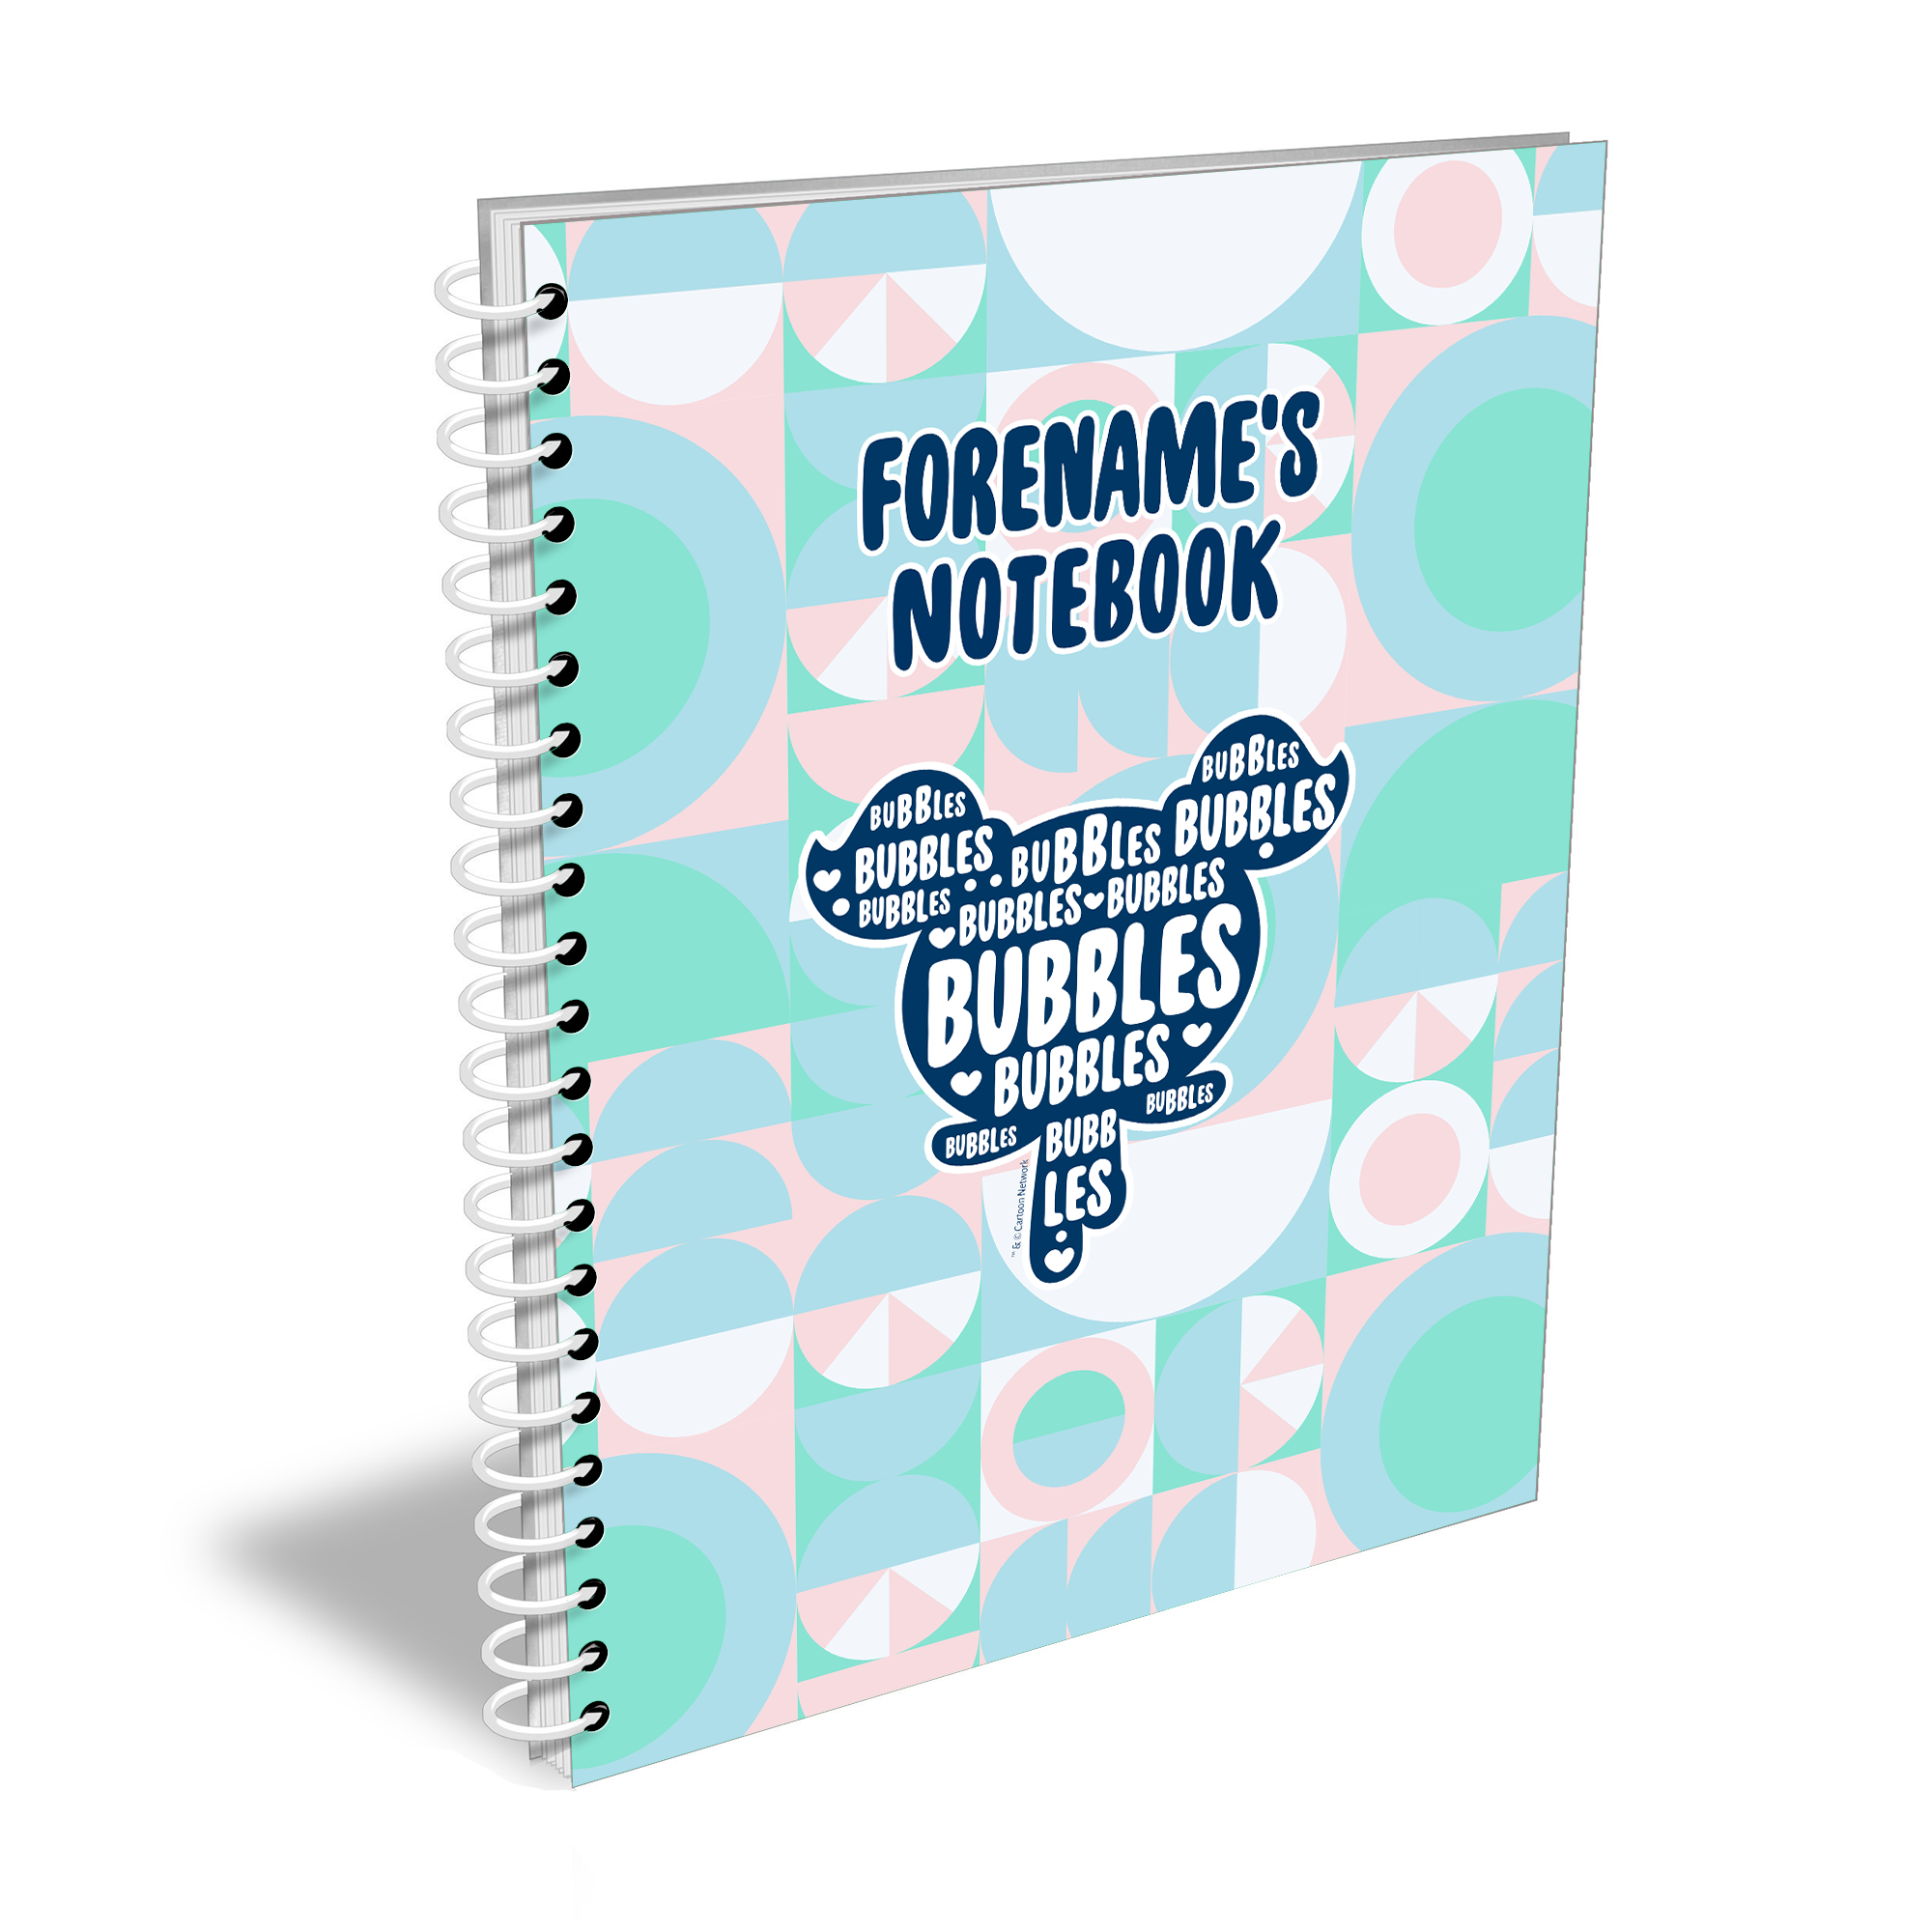 Powerpuff Girls Silhouette Bubbles Notebook A4